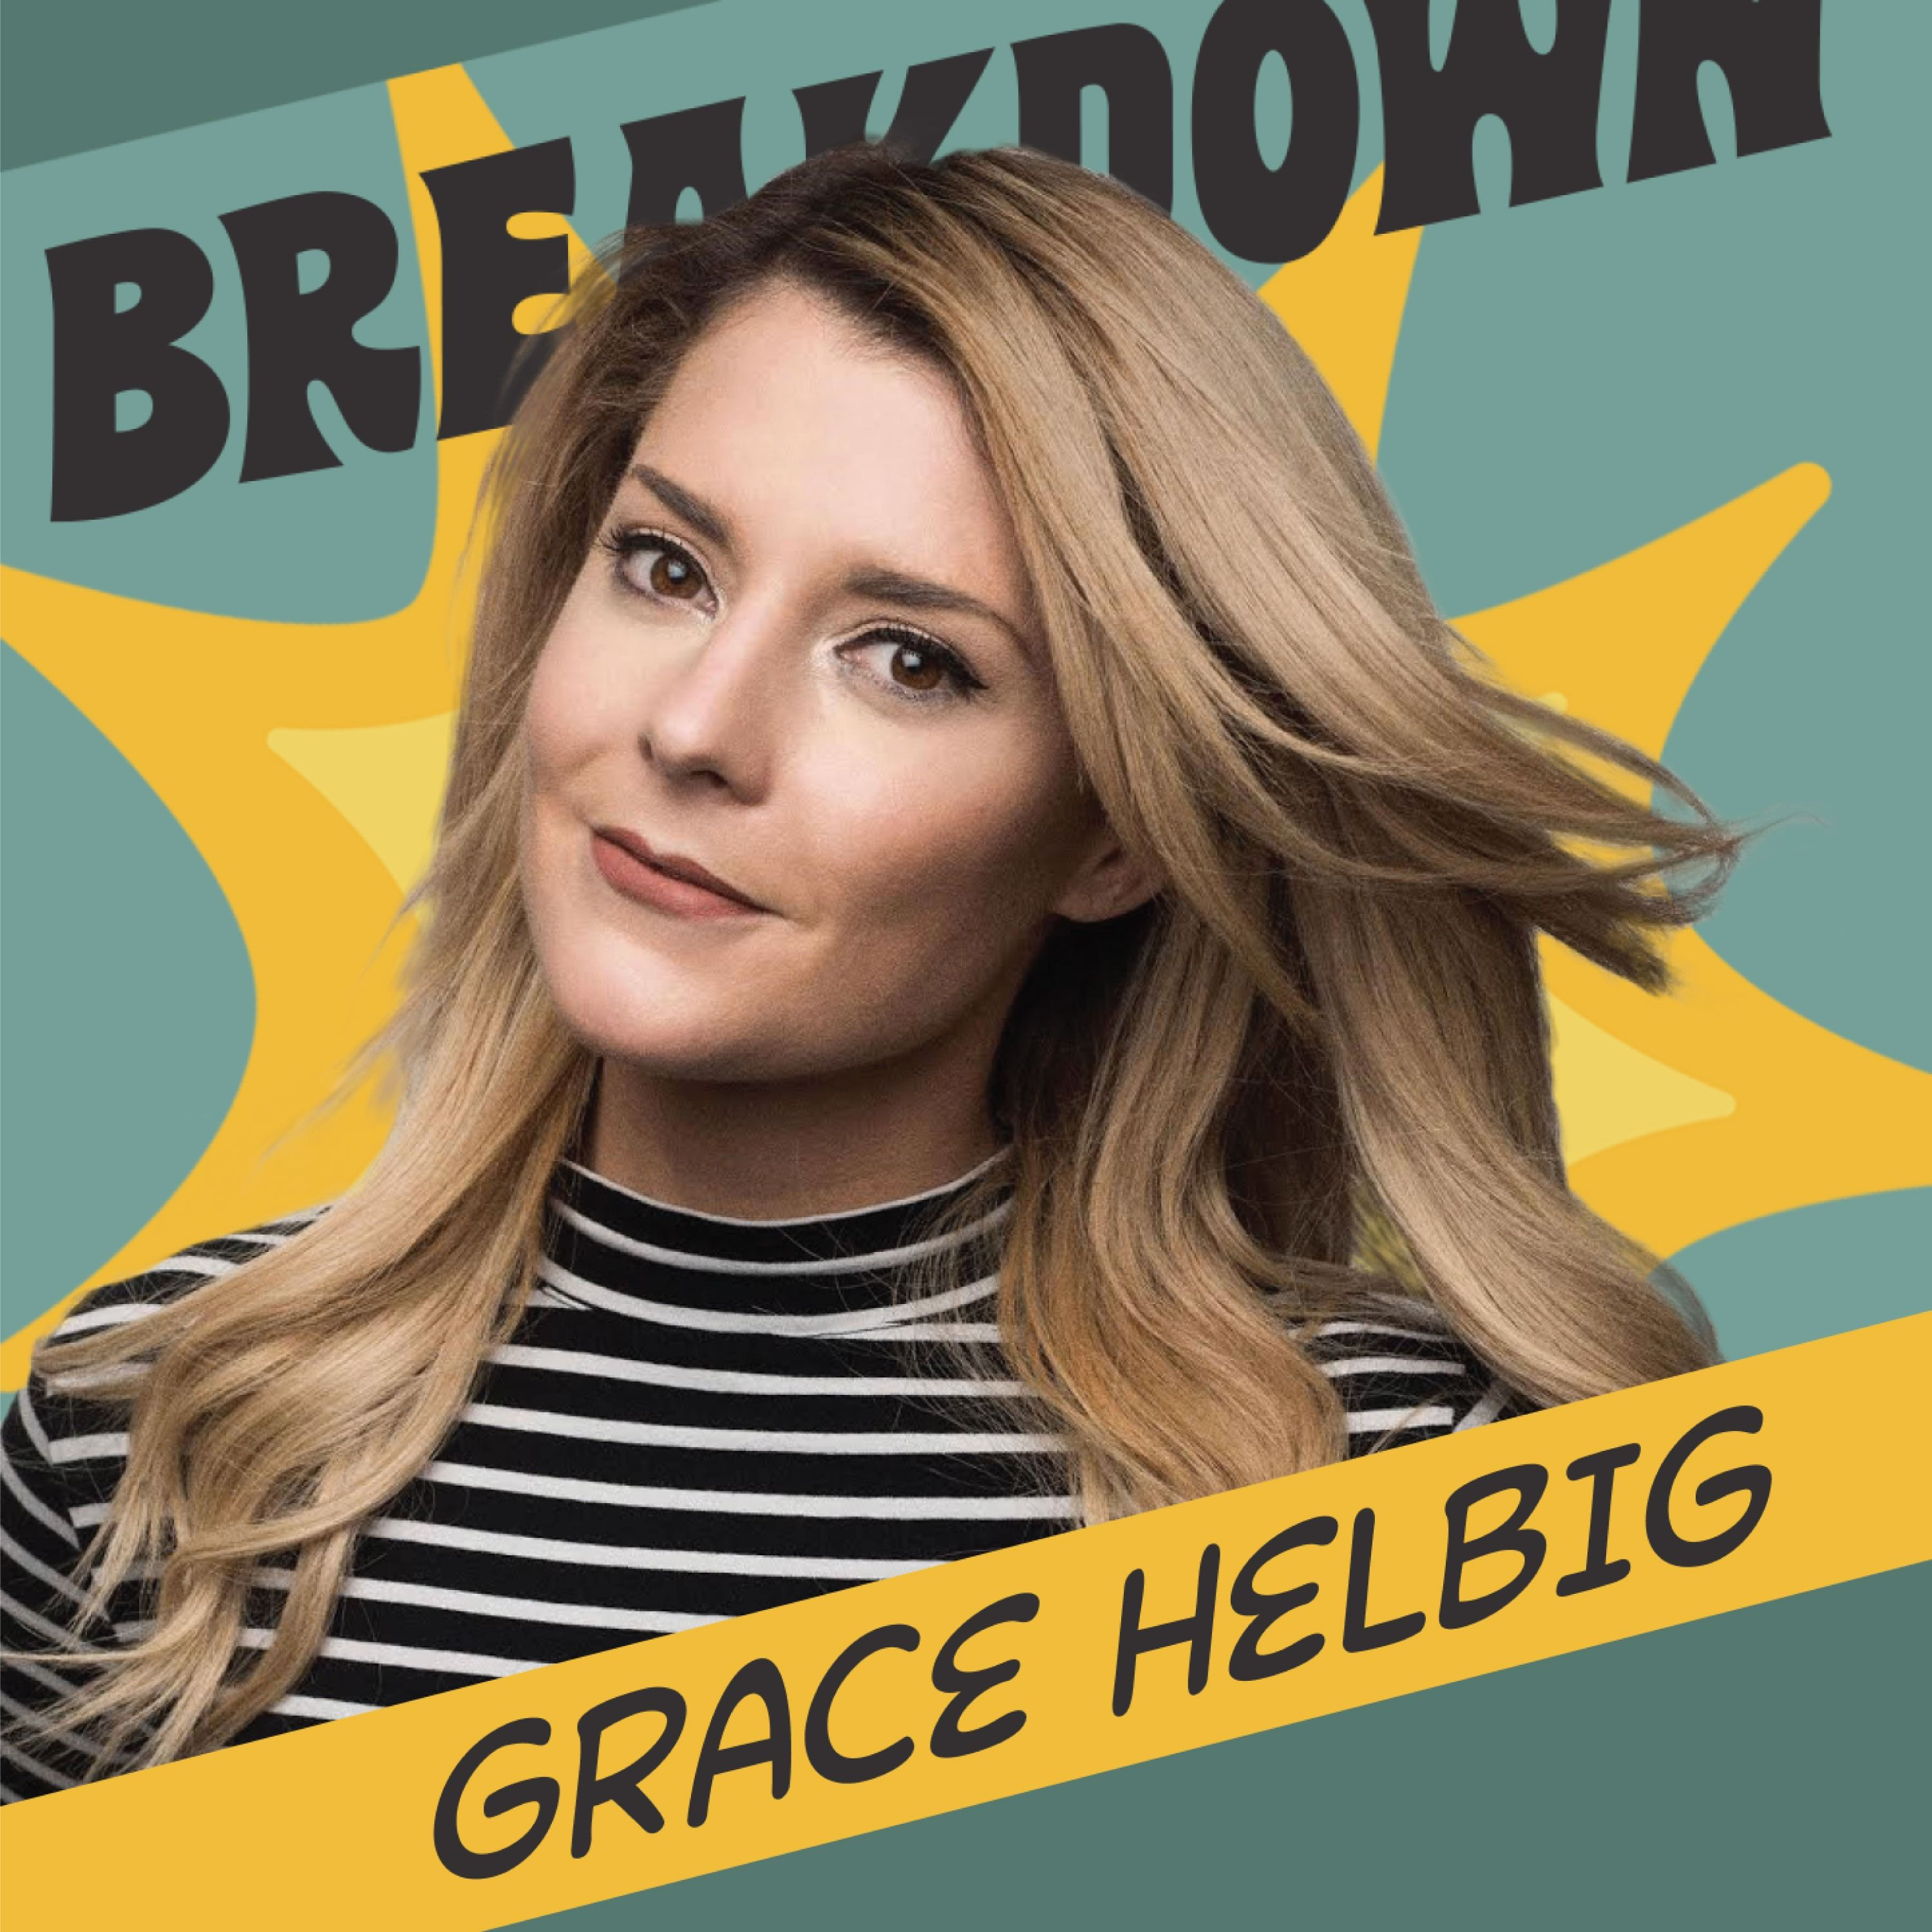 Comedy from Home Beats Anxiety with Grace Helbig